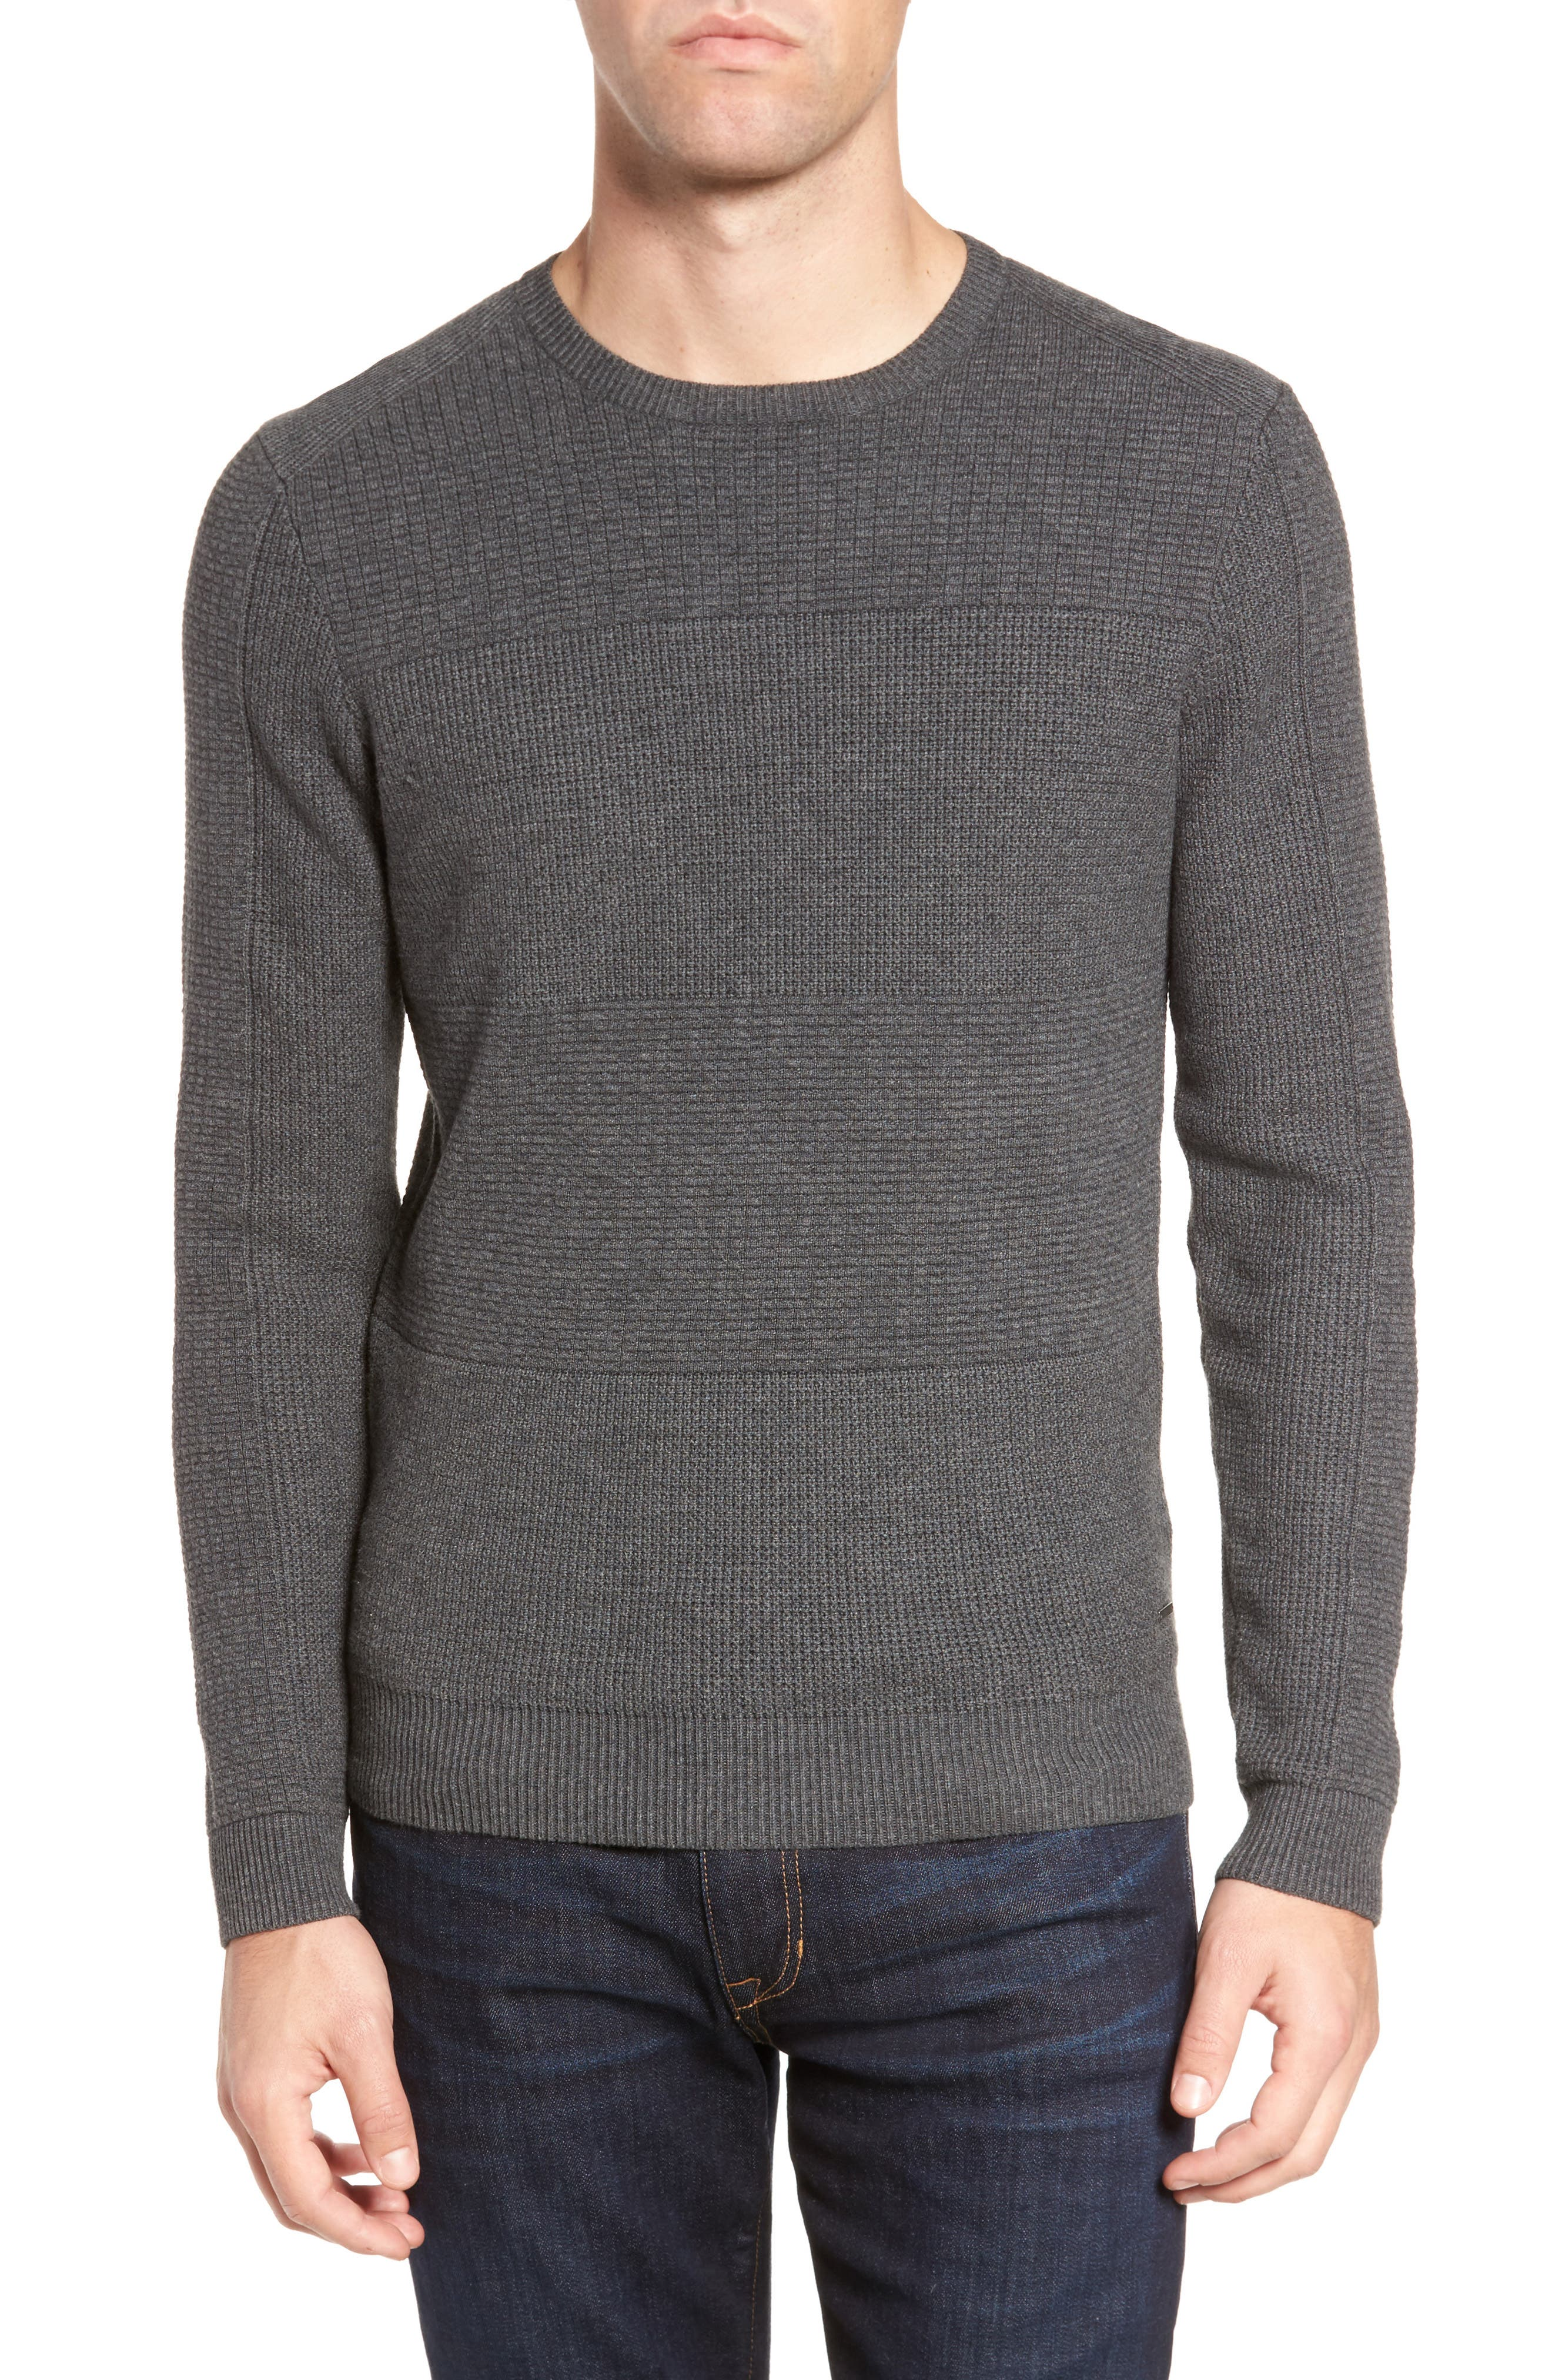 Naranjo Wool & Cotton Sweater,                         Main,                         color, 030